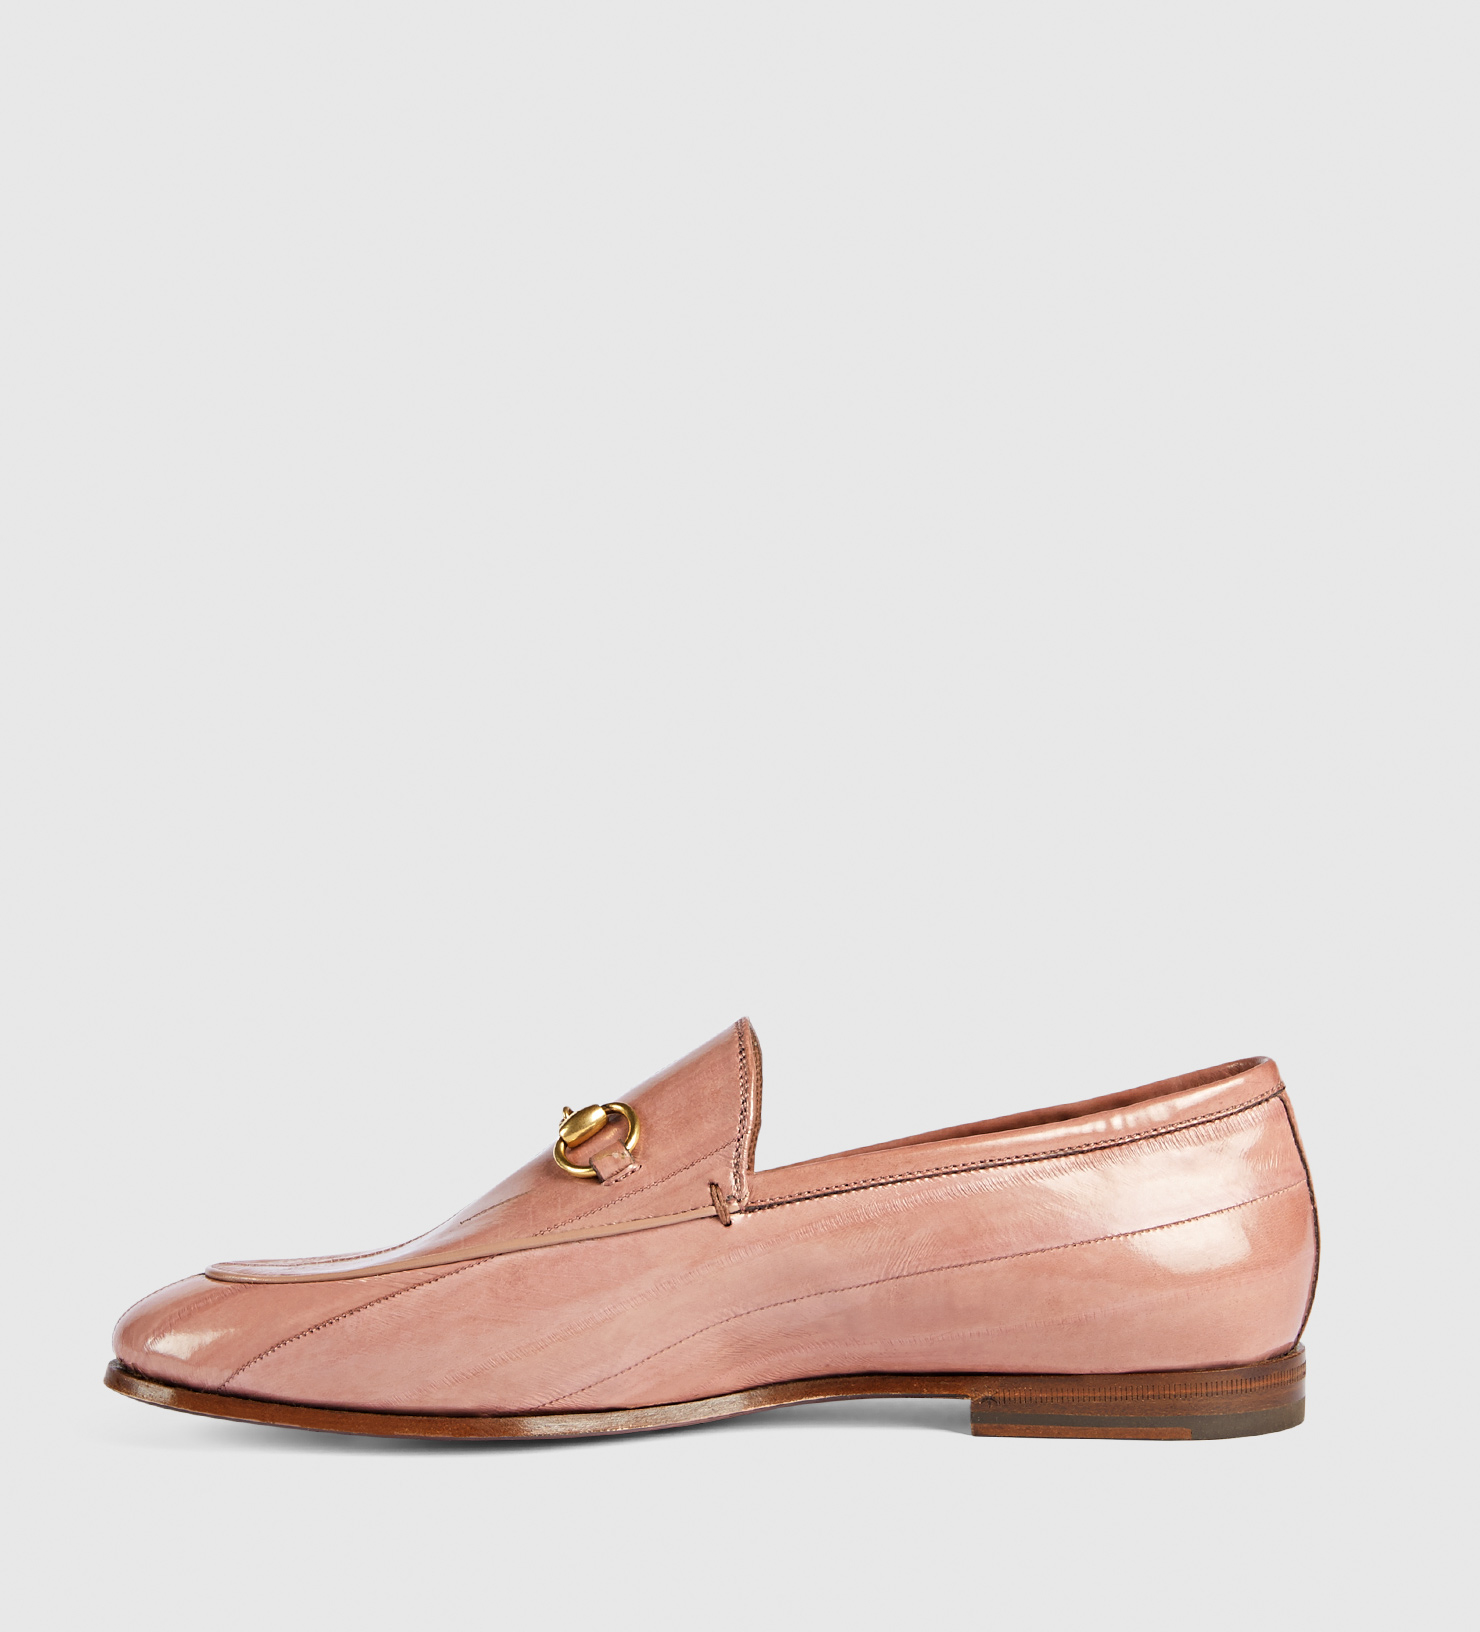 Lyst - Gucci Jordaan Eel Loafer in Pink